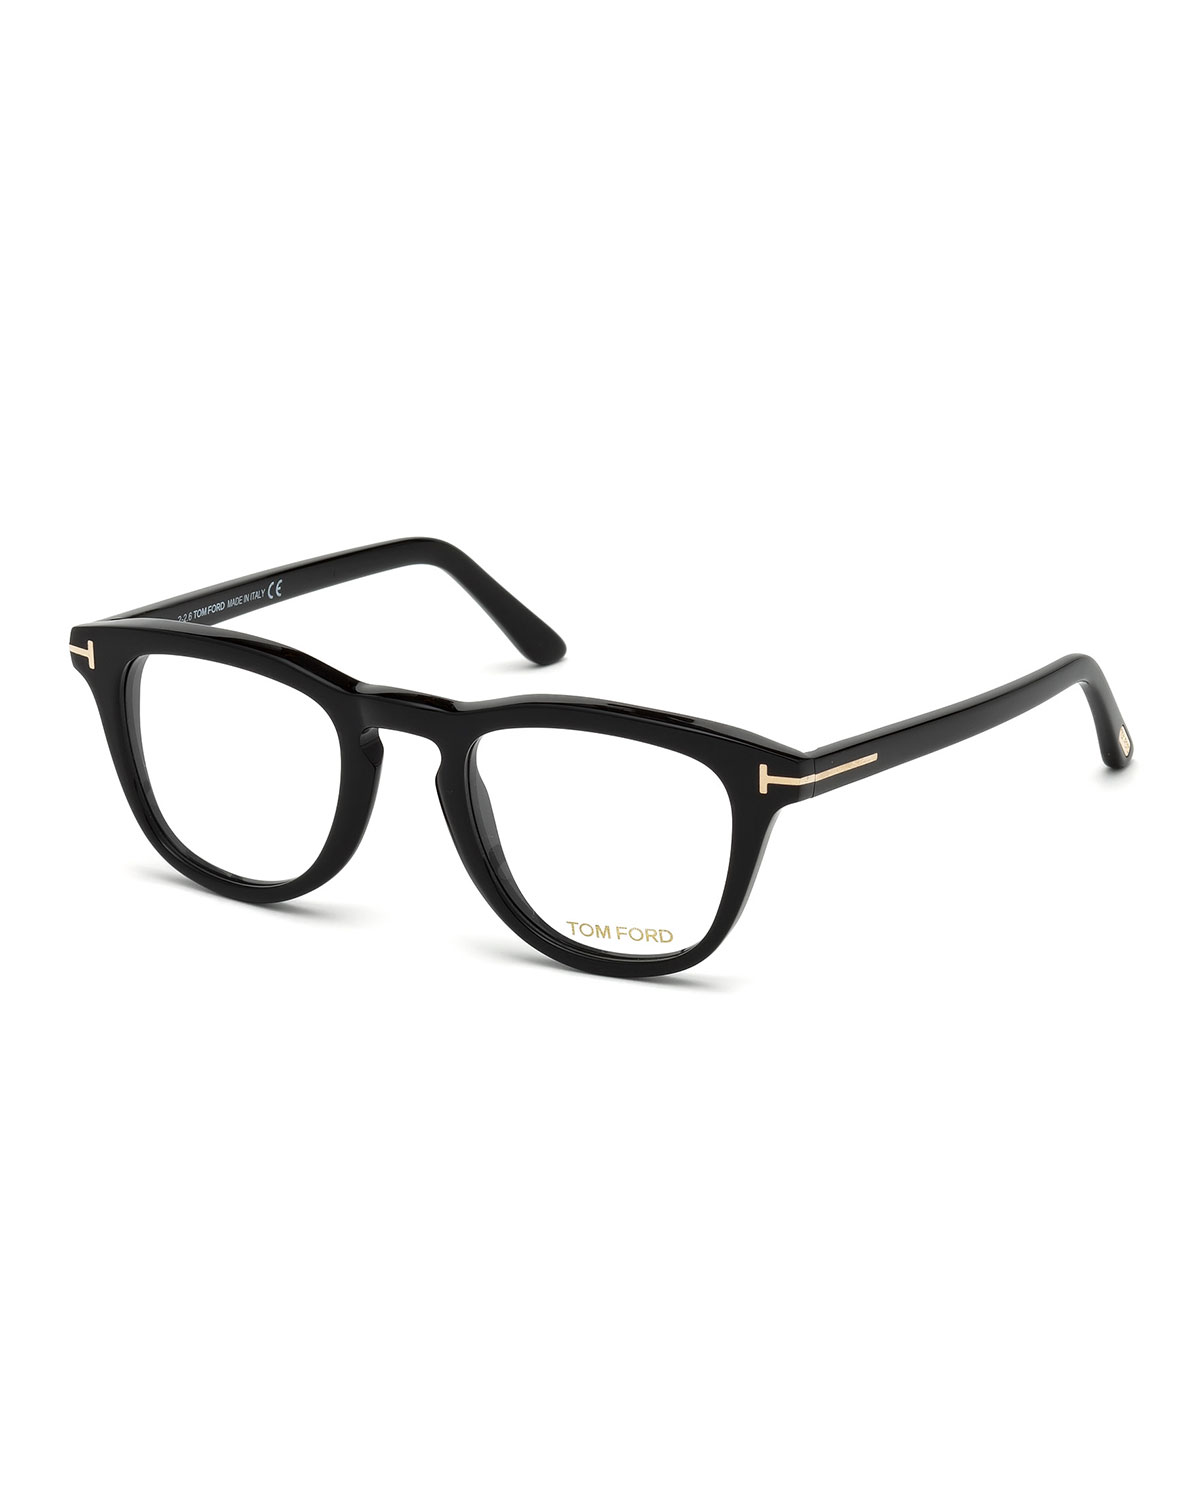 tom ford square acetate optical frames | neiman marcus